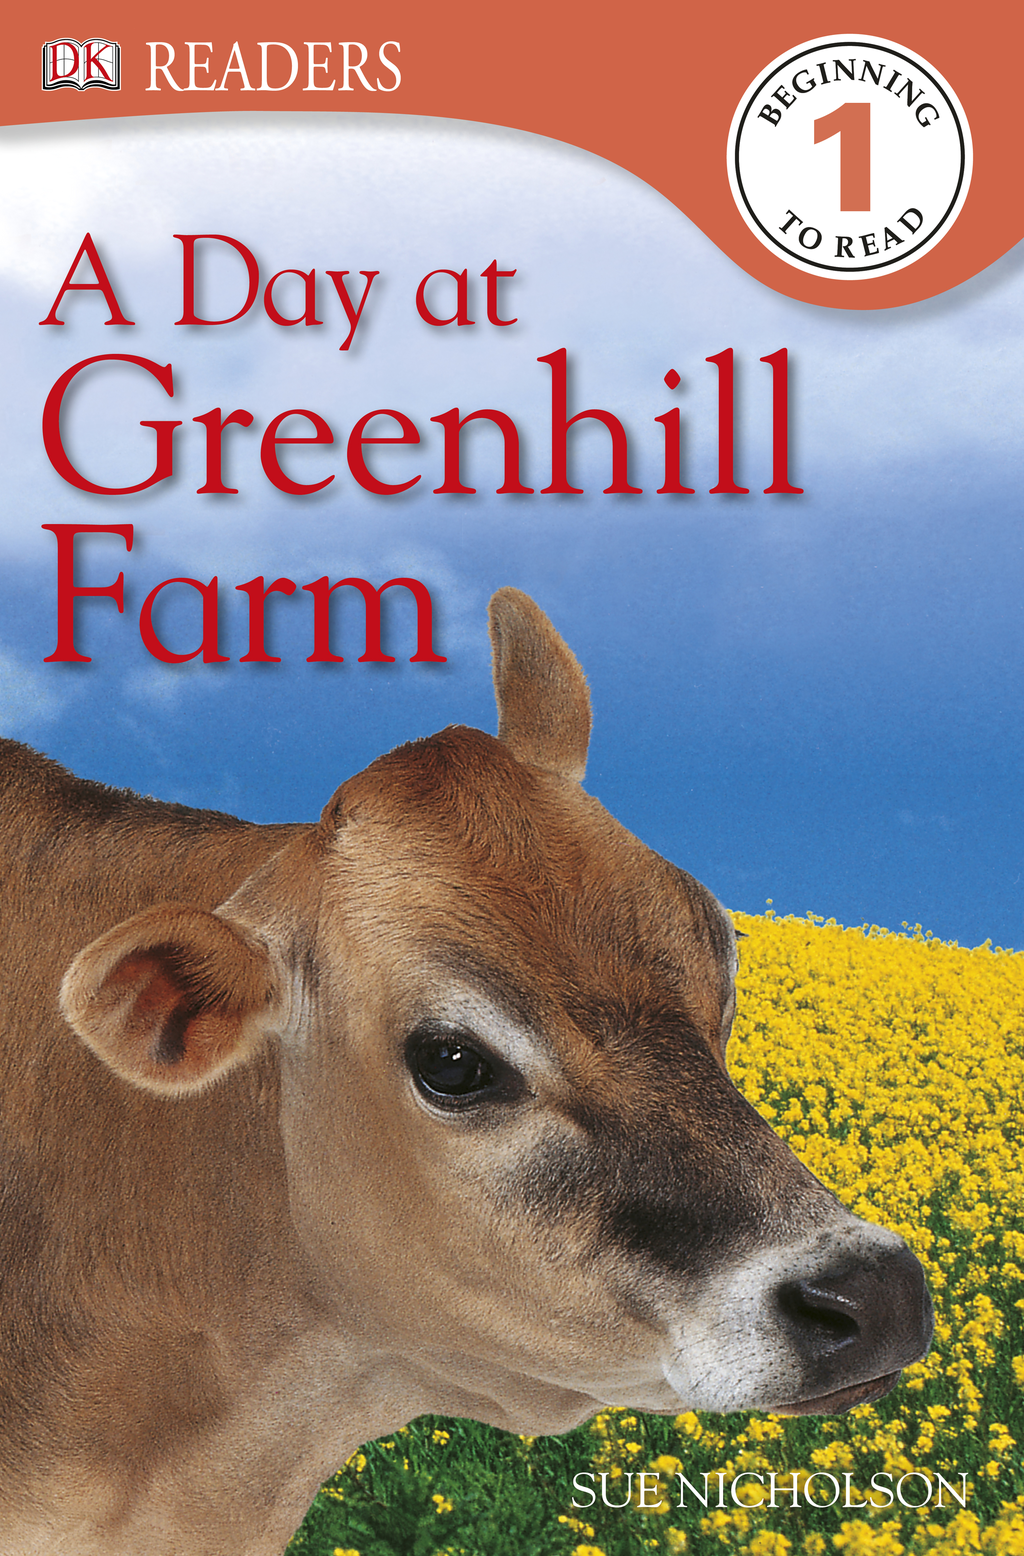 DK Readers: A Day at Greenhill Farm By: Sue Nicholson